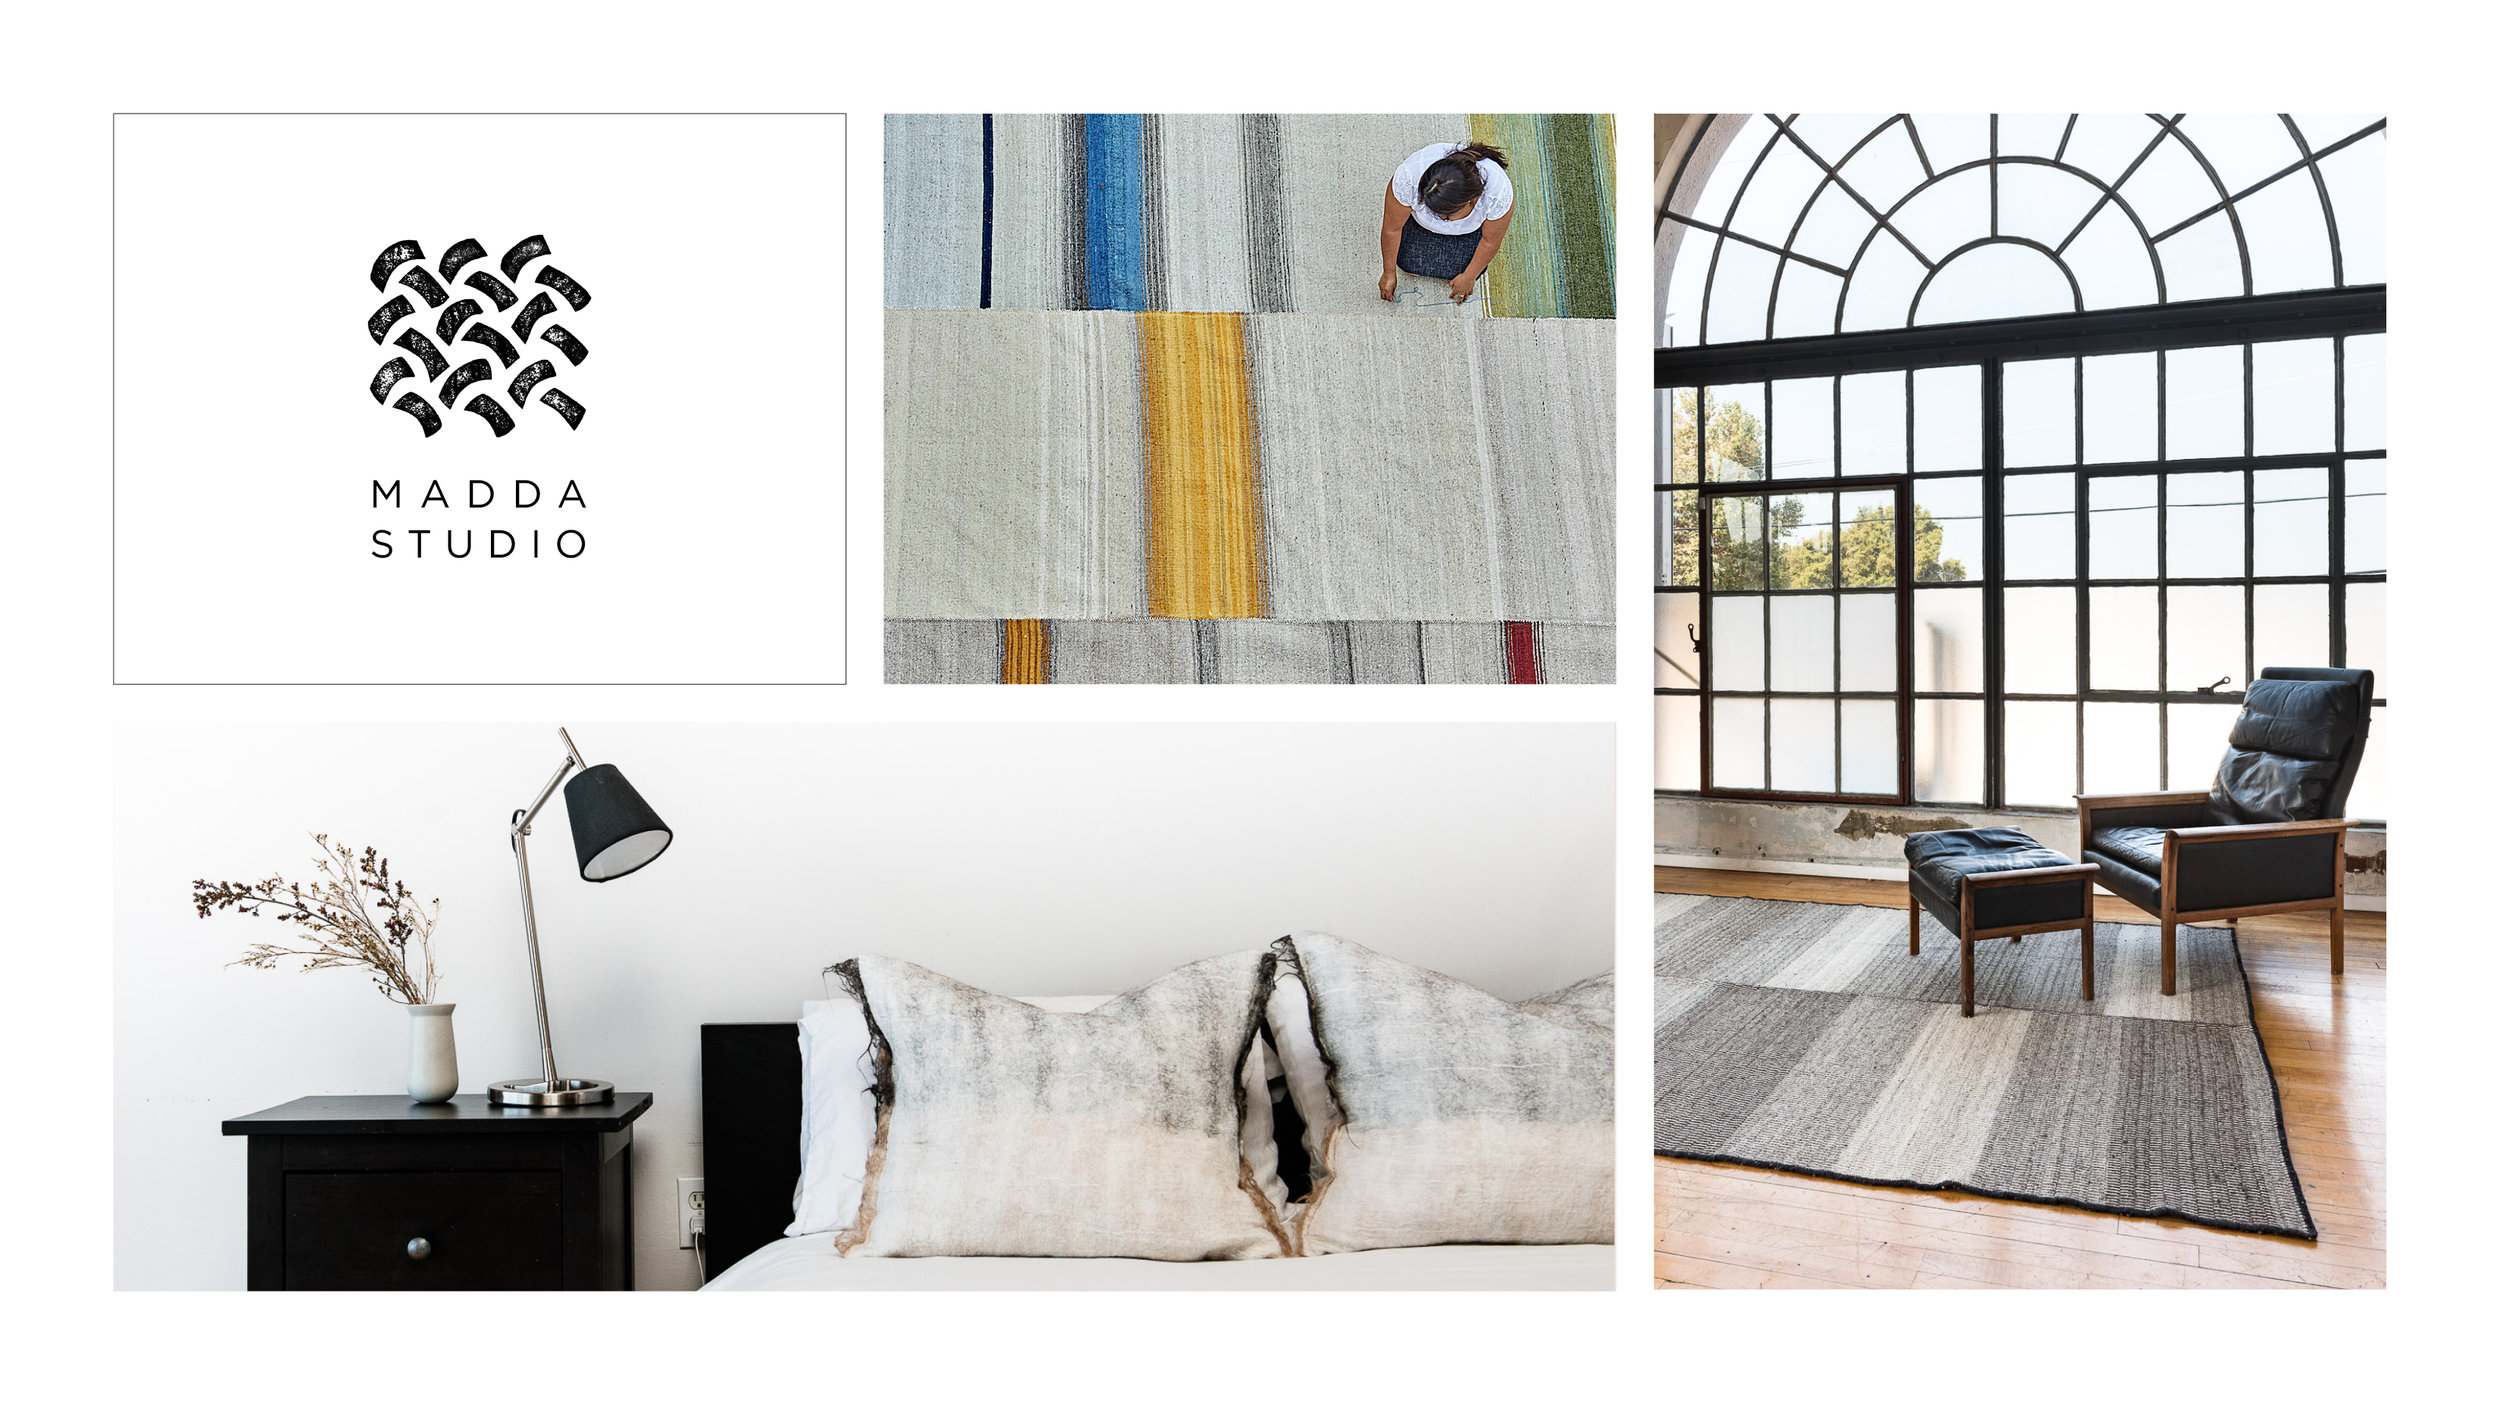 The Logo and Website for Madda Studio was created to launch the exclusive collection of handmade rugs and interior designs. Projects include logo design, supporting assets, marketing materials and squarespace website.